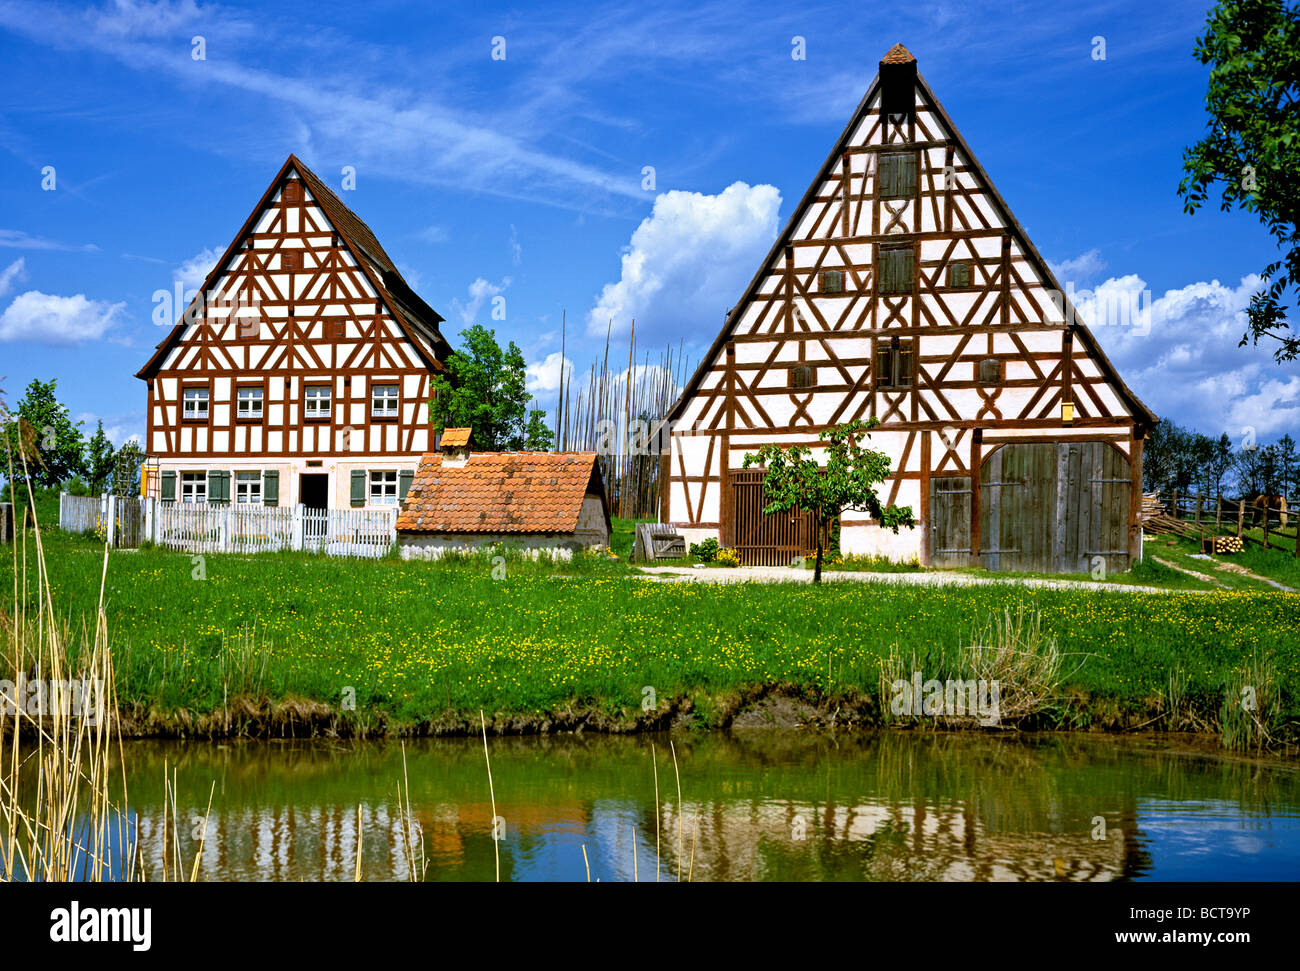 Fraenkisches Freilandmuseum outdoor museum Bad Windheim, old Franconian farm, Middle Franconia, Bavaria, Germany, - Stock Image